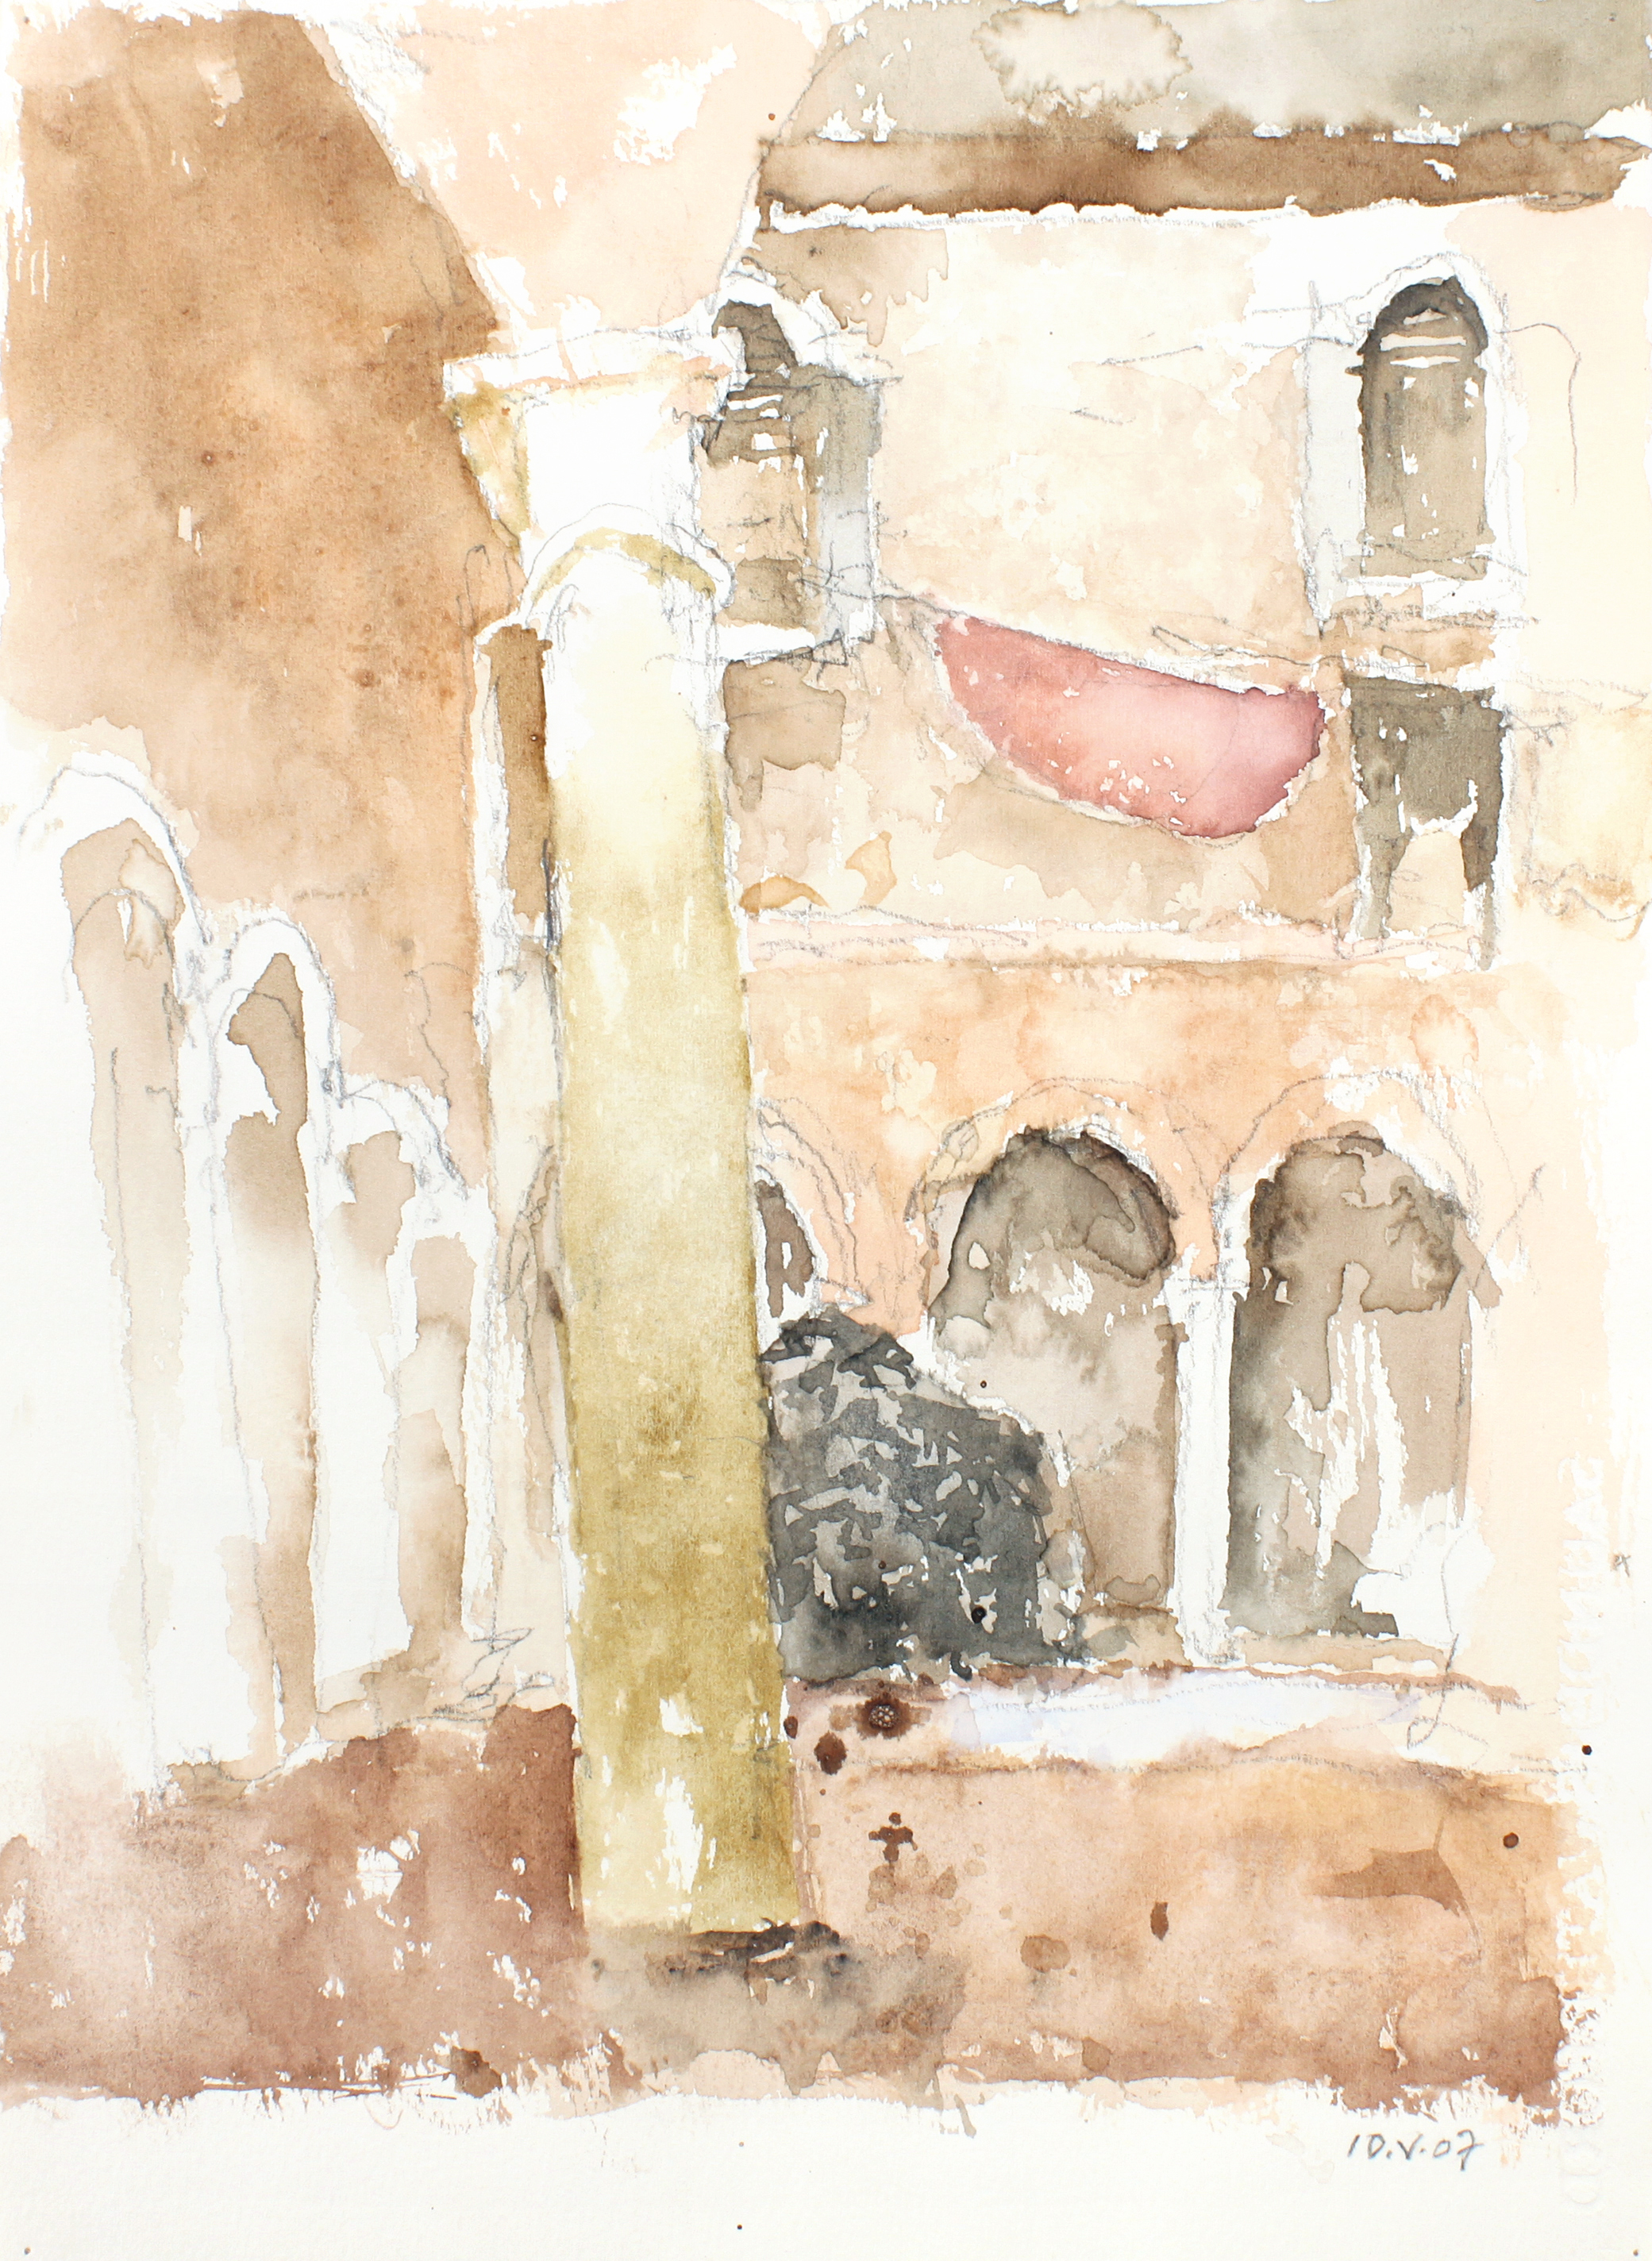 2007_San_Giobe_Courtyard_Venice_watercolour_and_pencil_on_paper_15x11in_WPF255.jpg